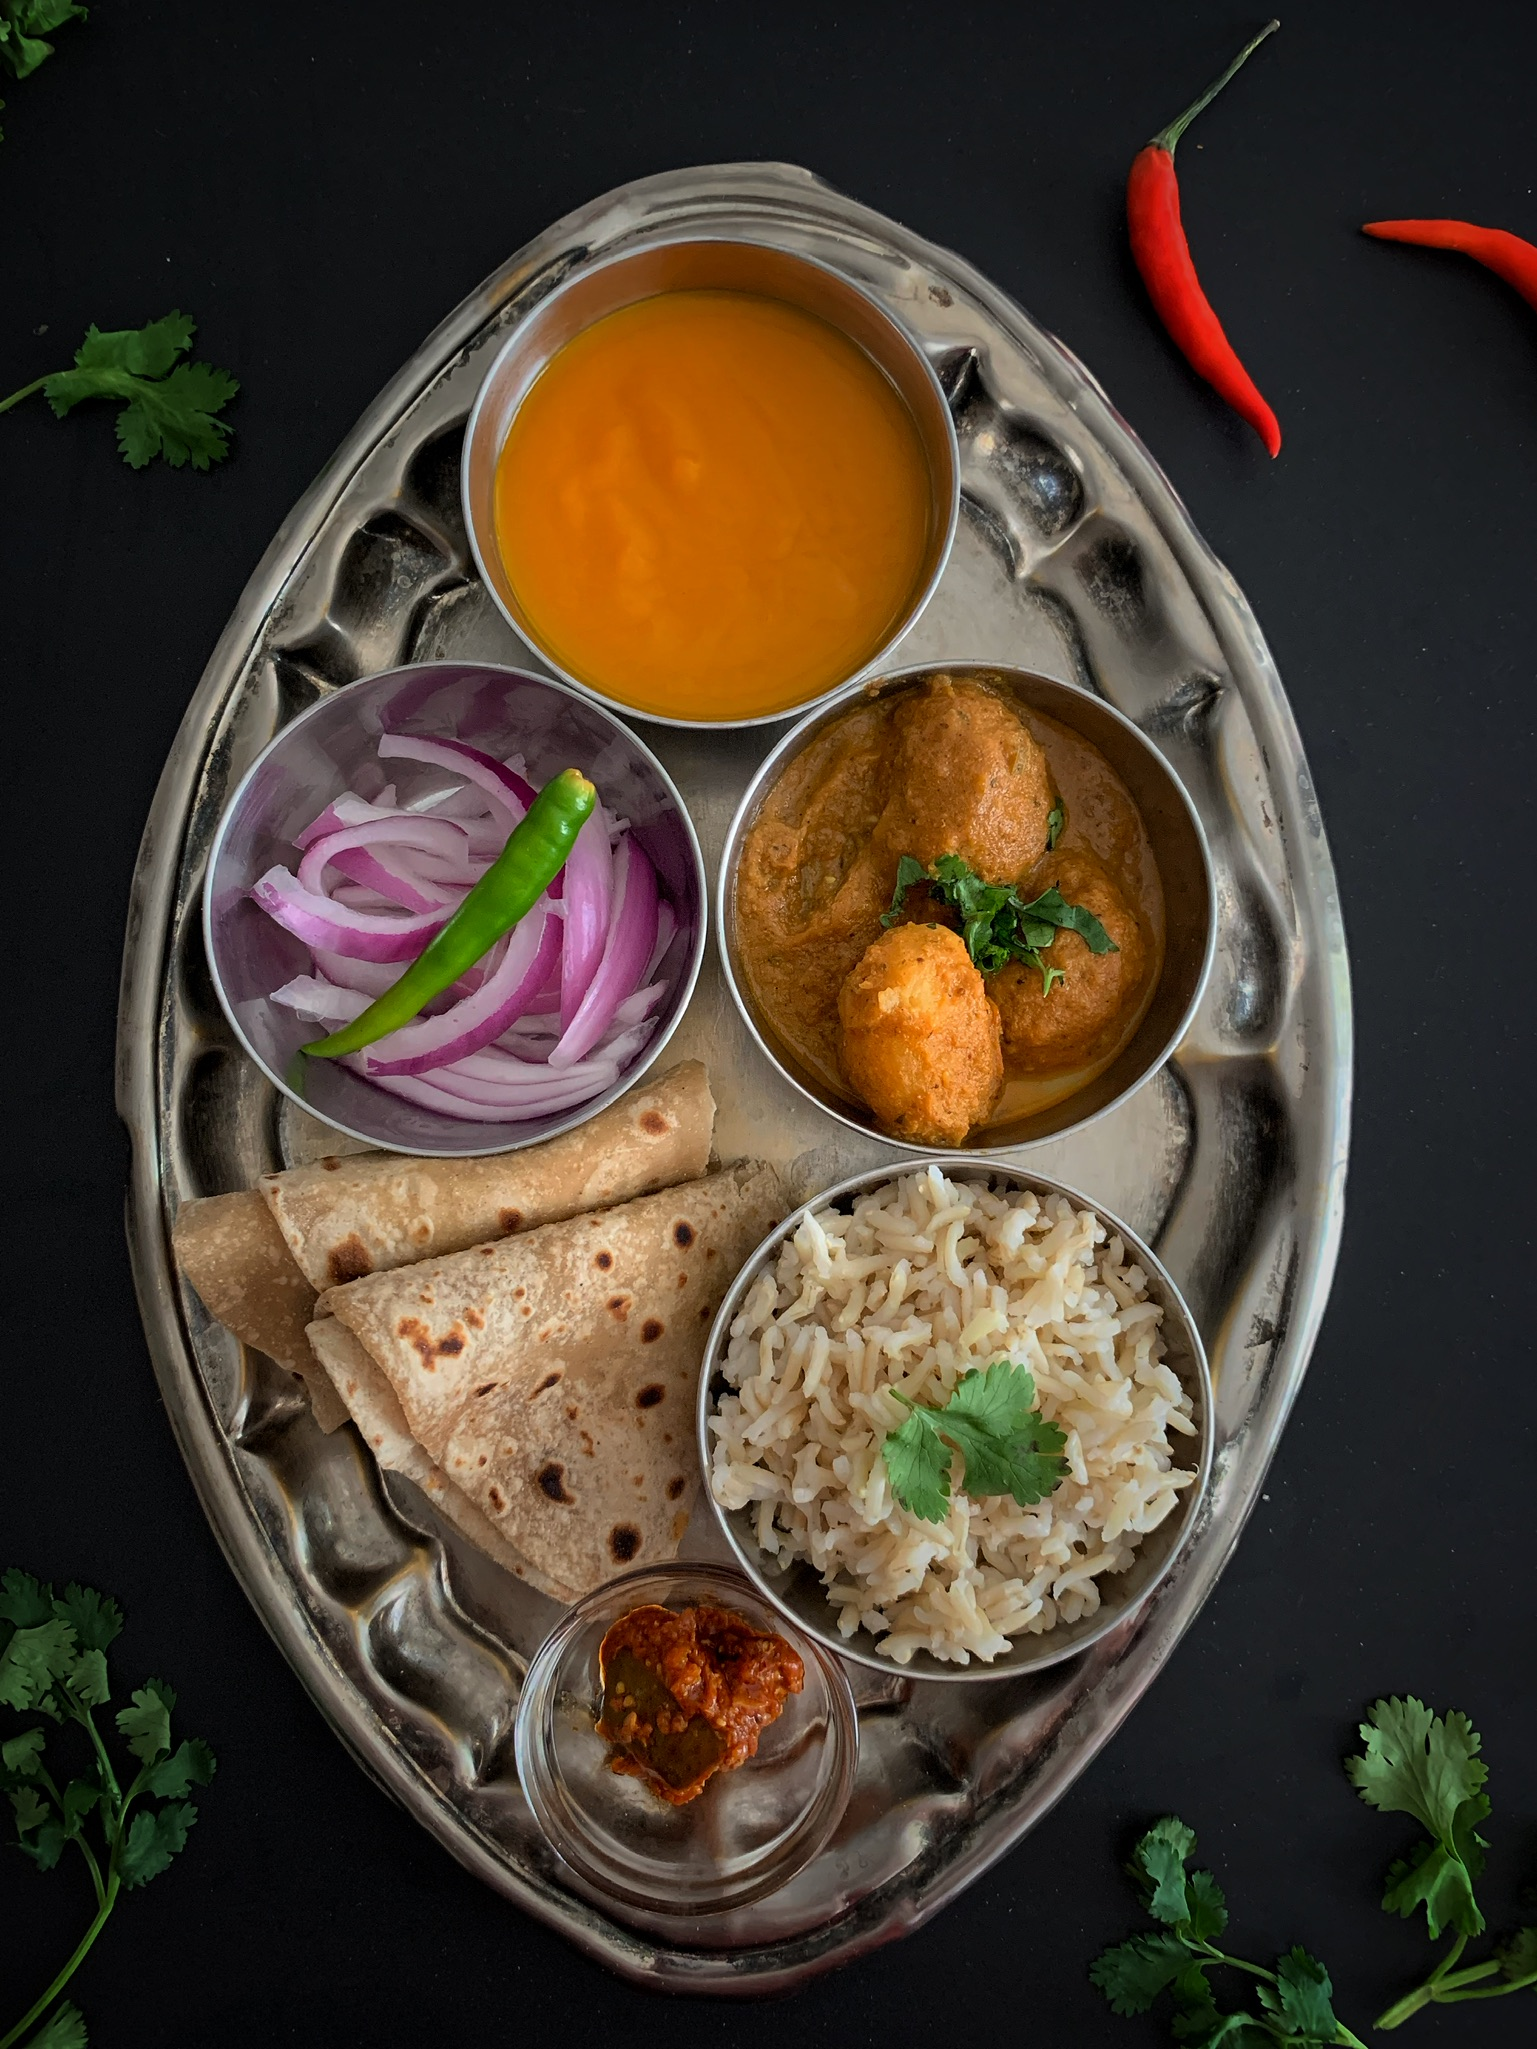 Indian Thali with Dum Aloo, Rice, Roti, Mango pulp, Pickle, Sliced onions